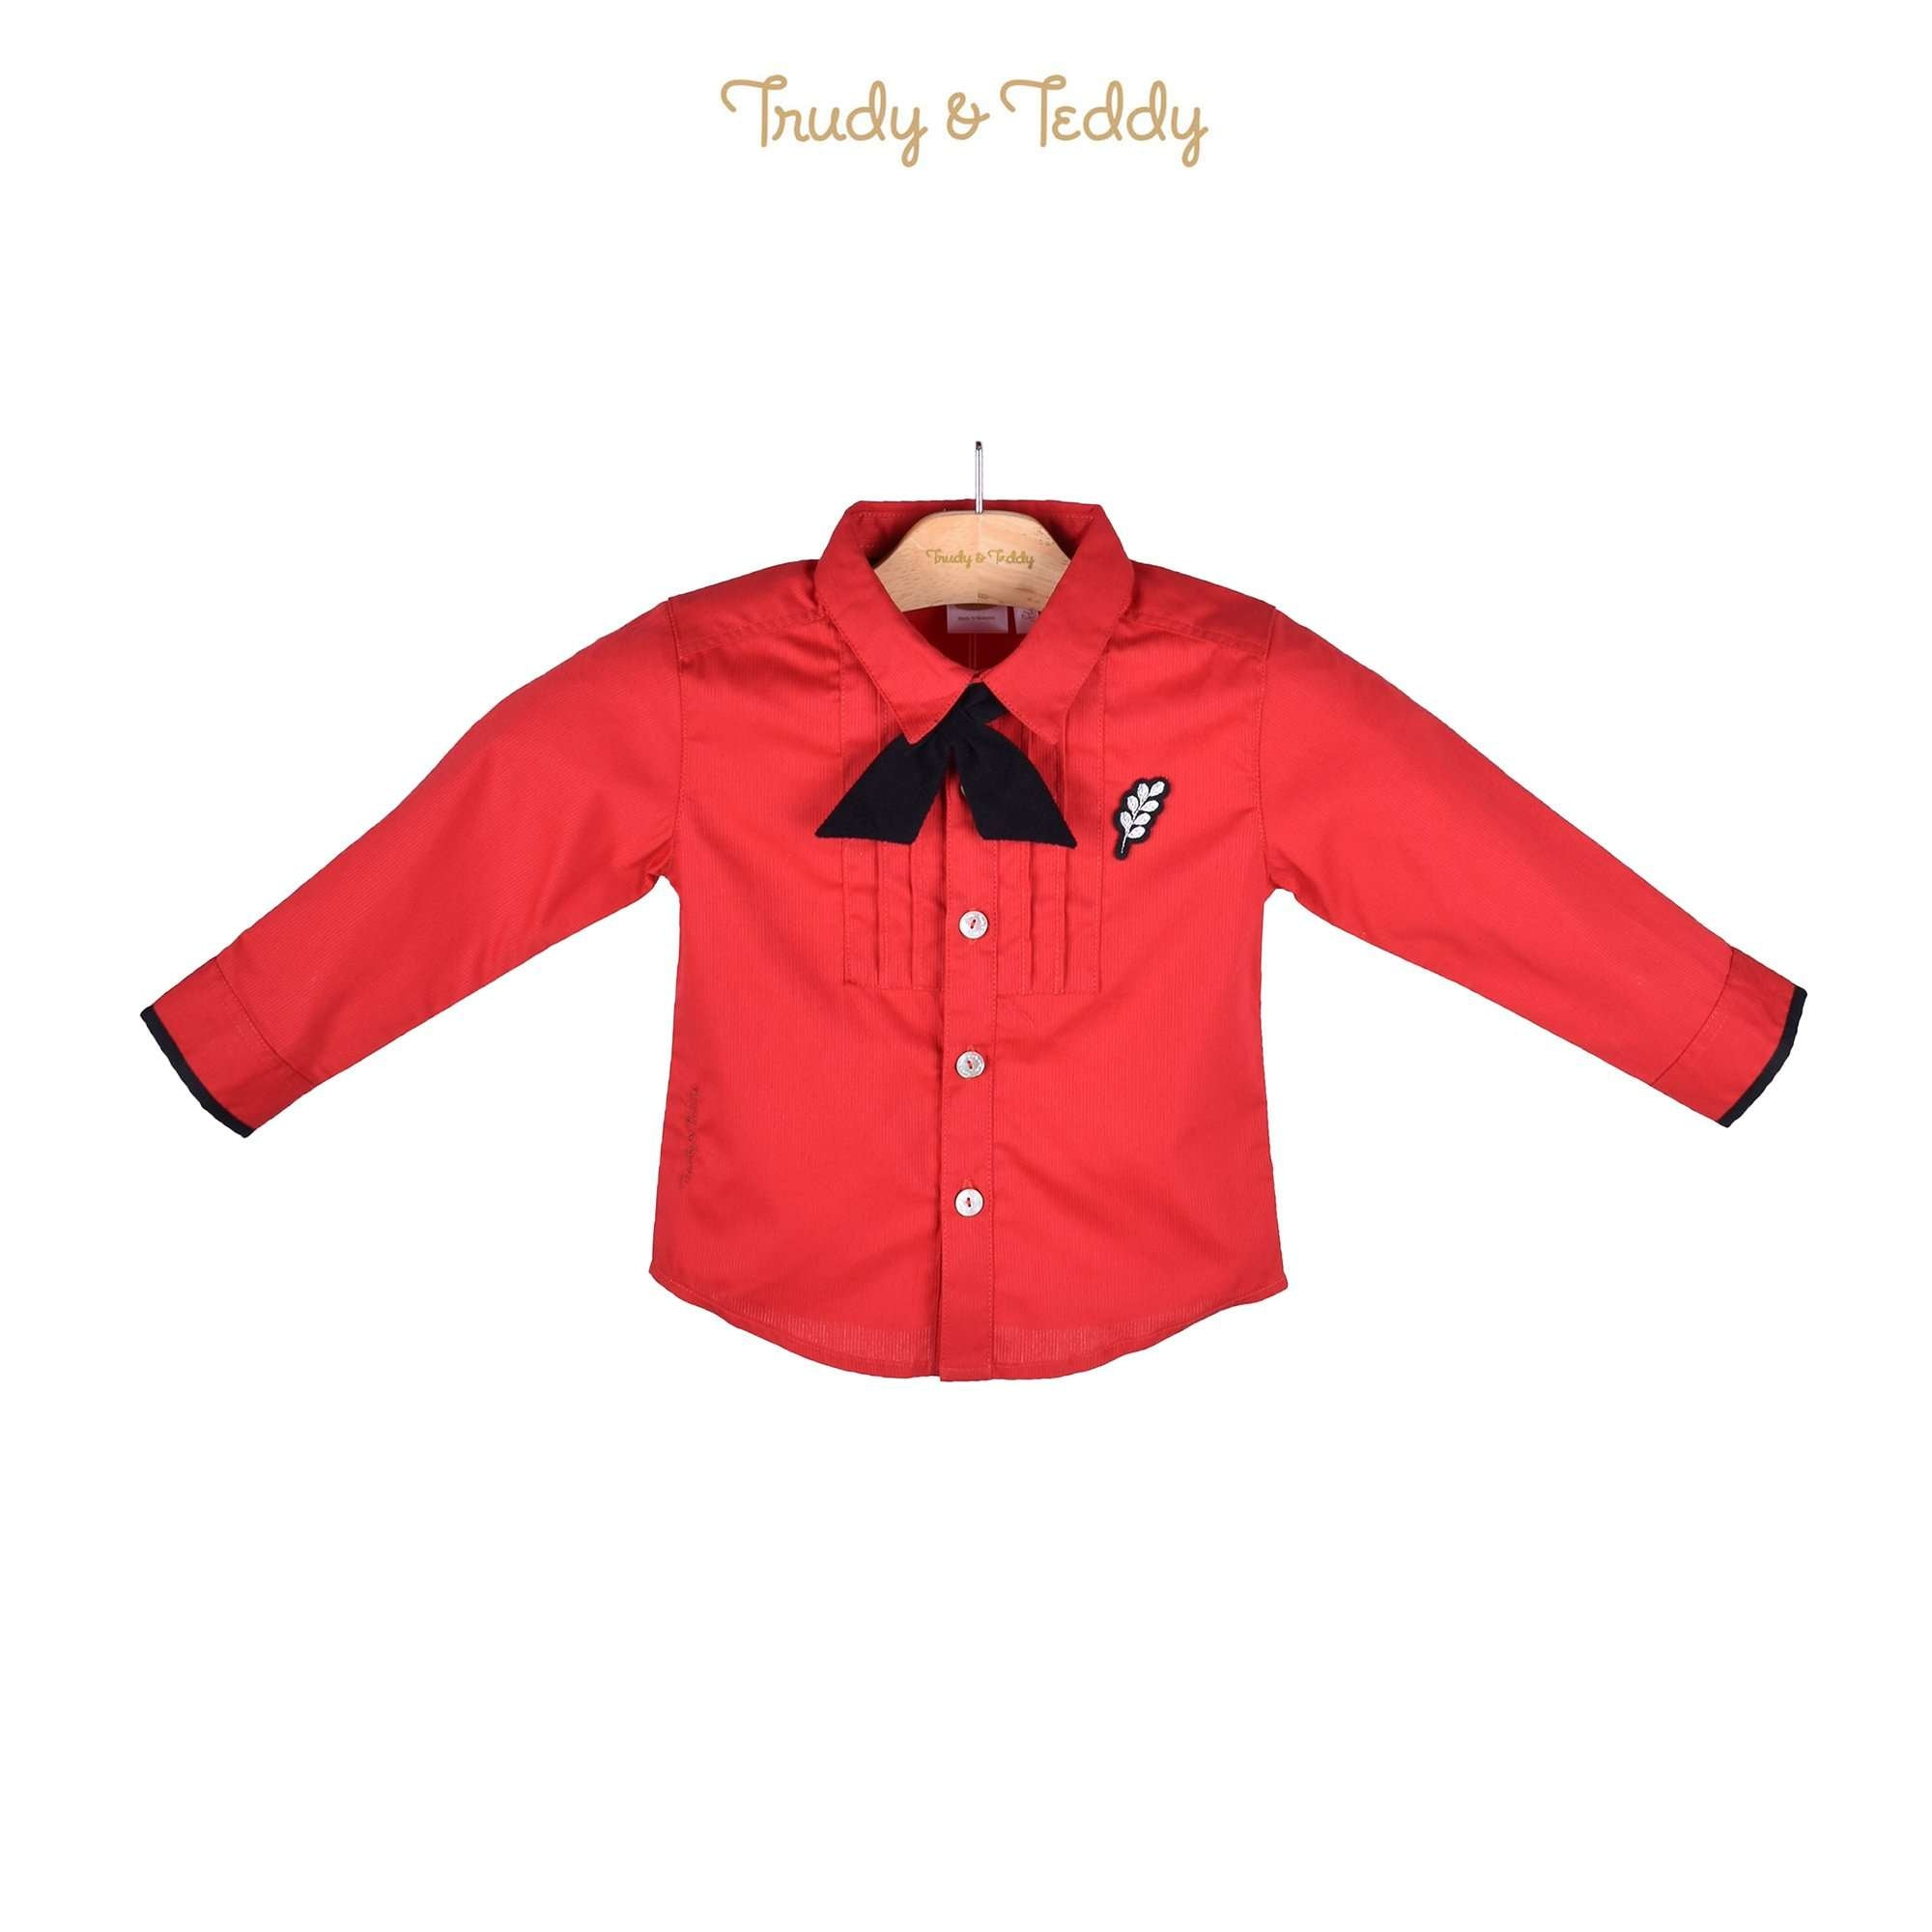 Trudy & Teddy Toddler Boy Long Sleeve Shirt 815123-151 : Buy Trudy & Teddy online at CMG.MY